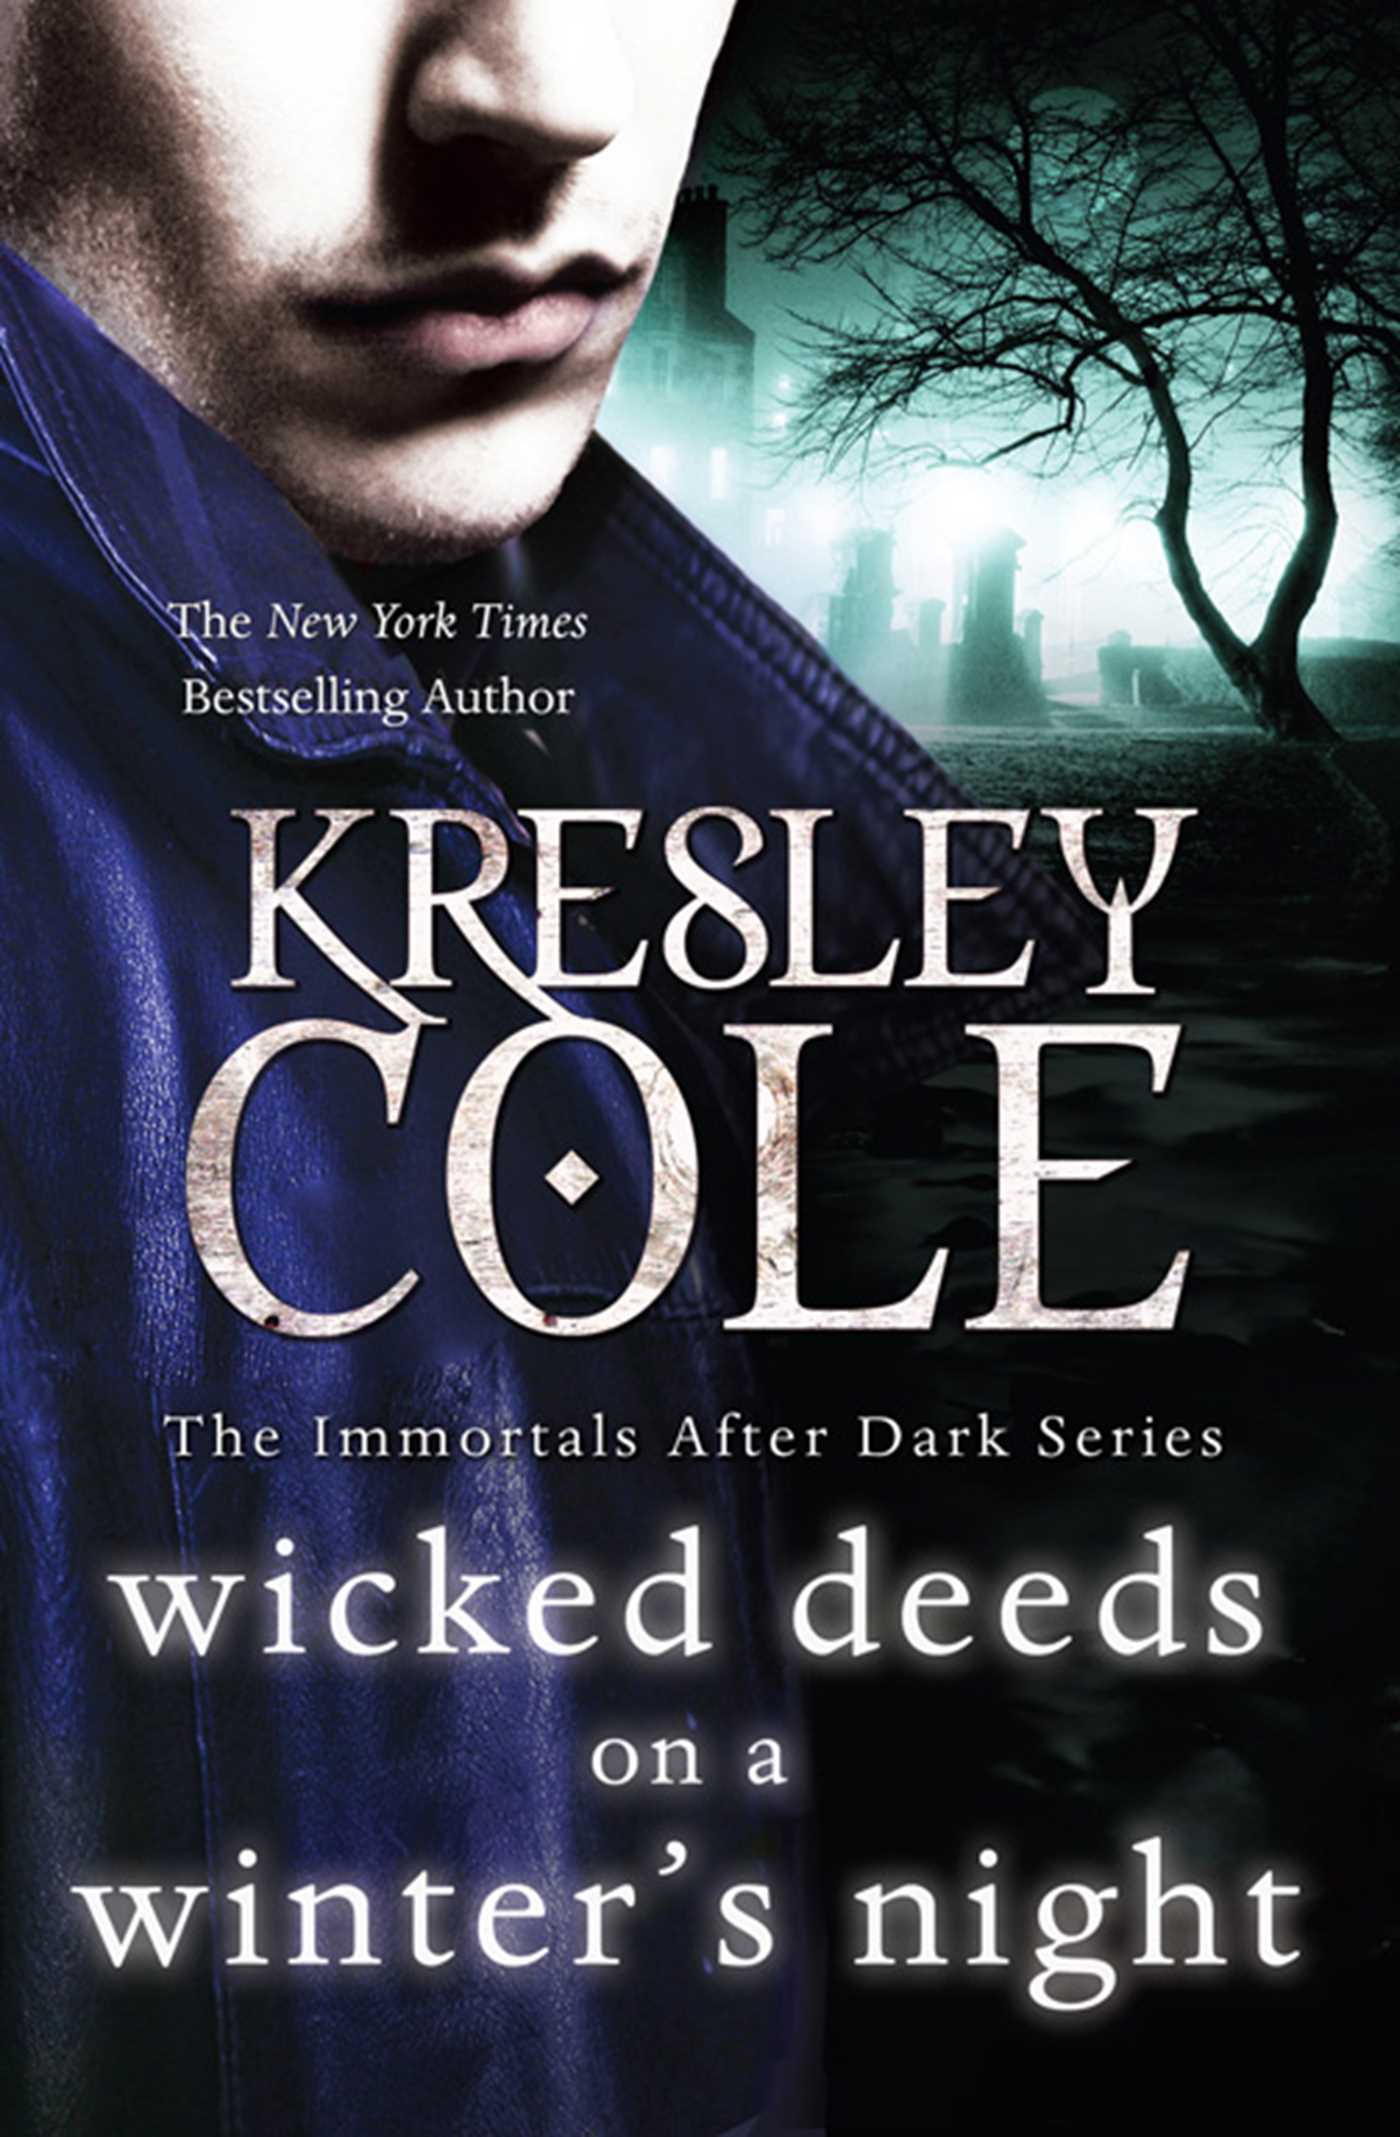 Wicked deeds on a winters night 9781849834261 hr